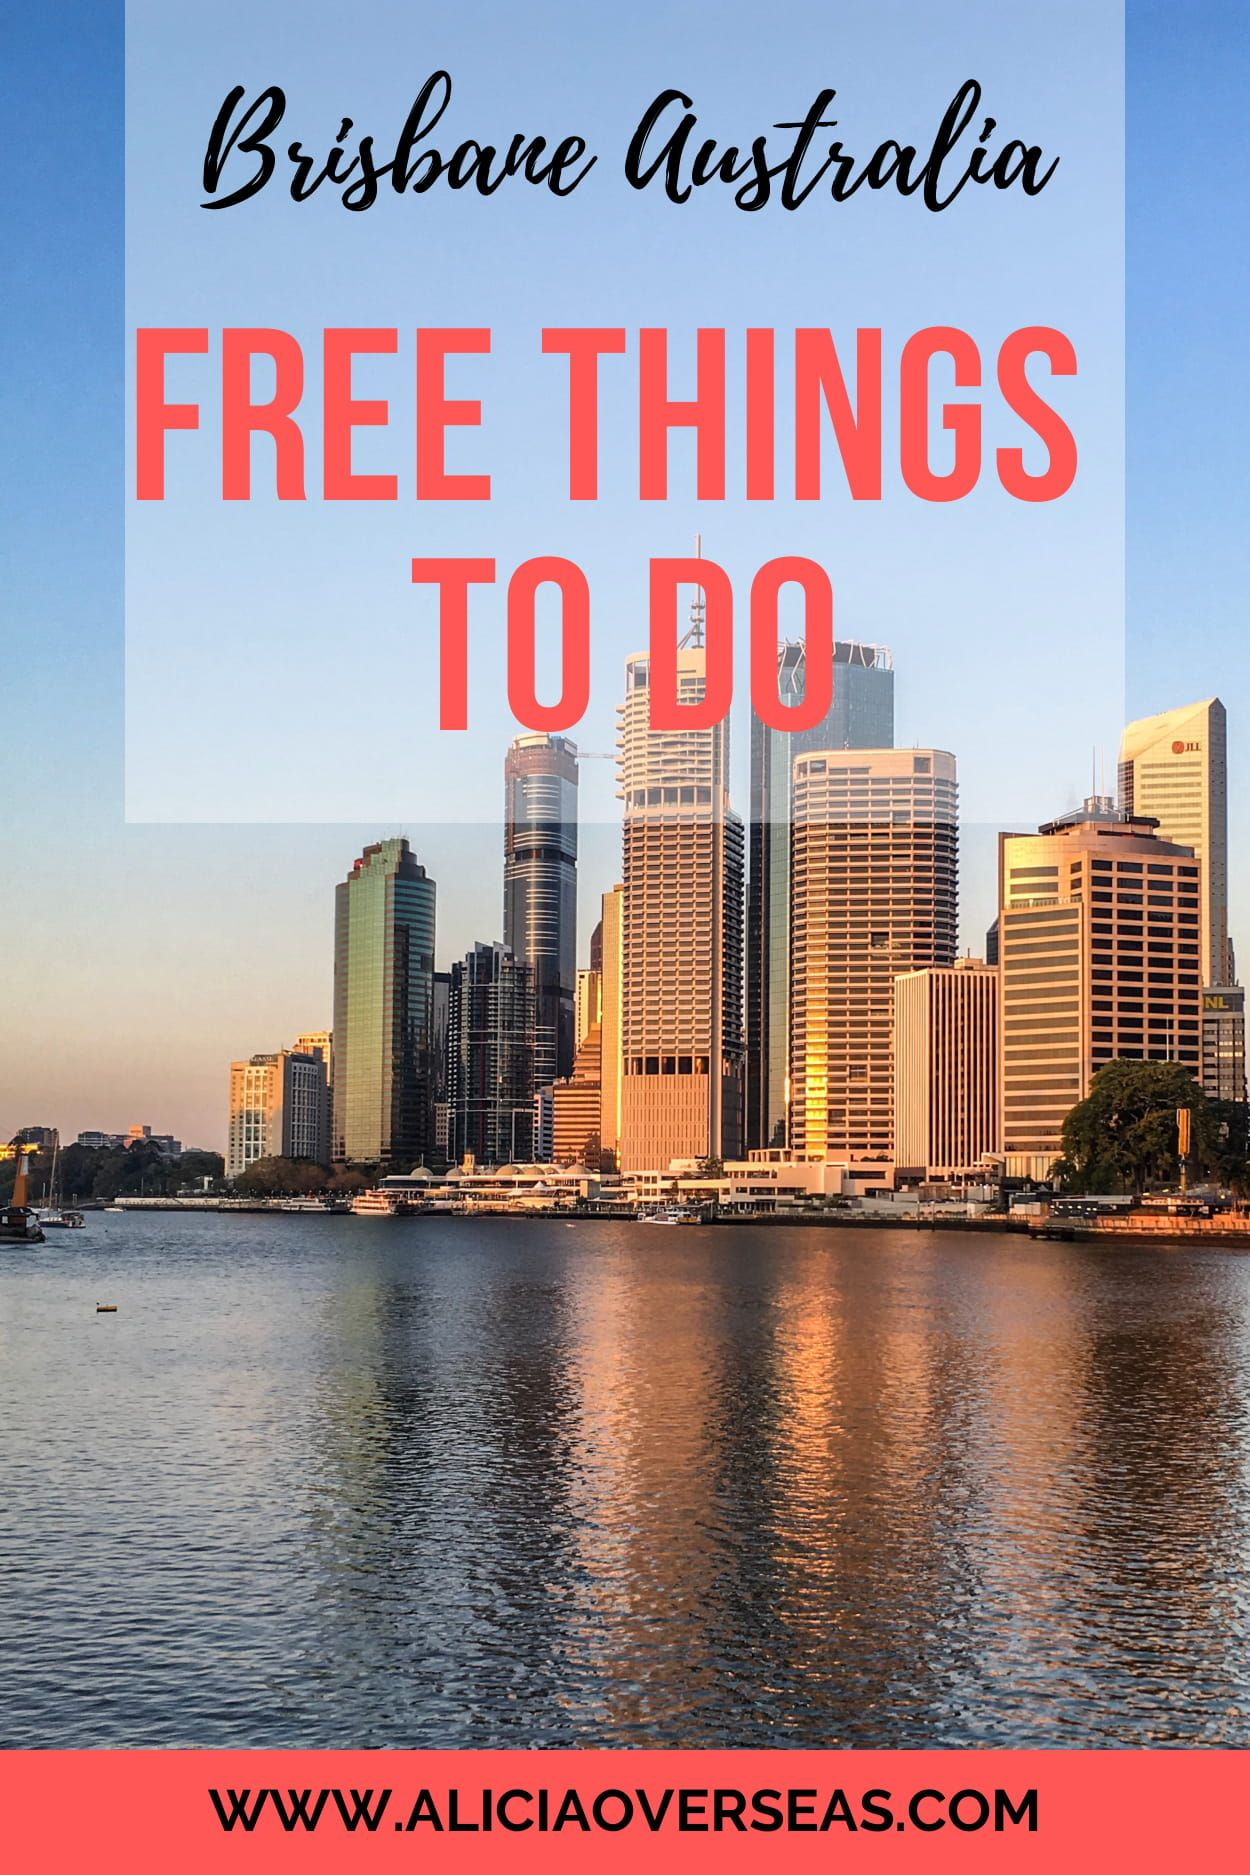 Free Things To Do In Brisbane In 2020 Things To Do In Brisbane Free Things To Do Cultural Travel Destinations